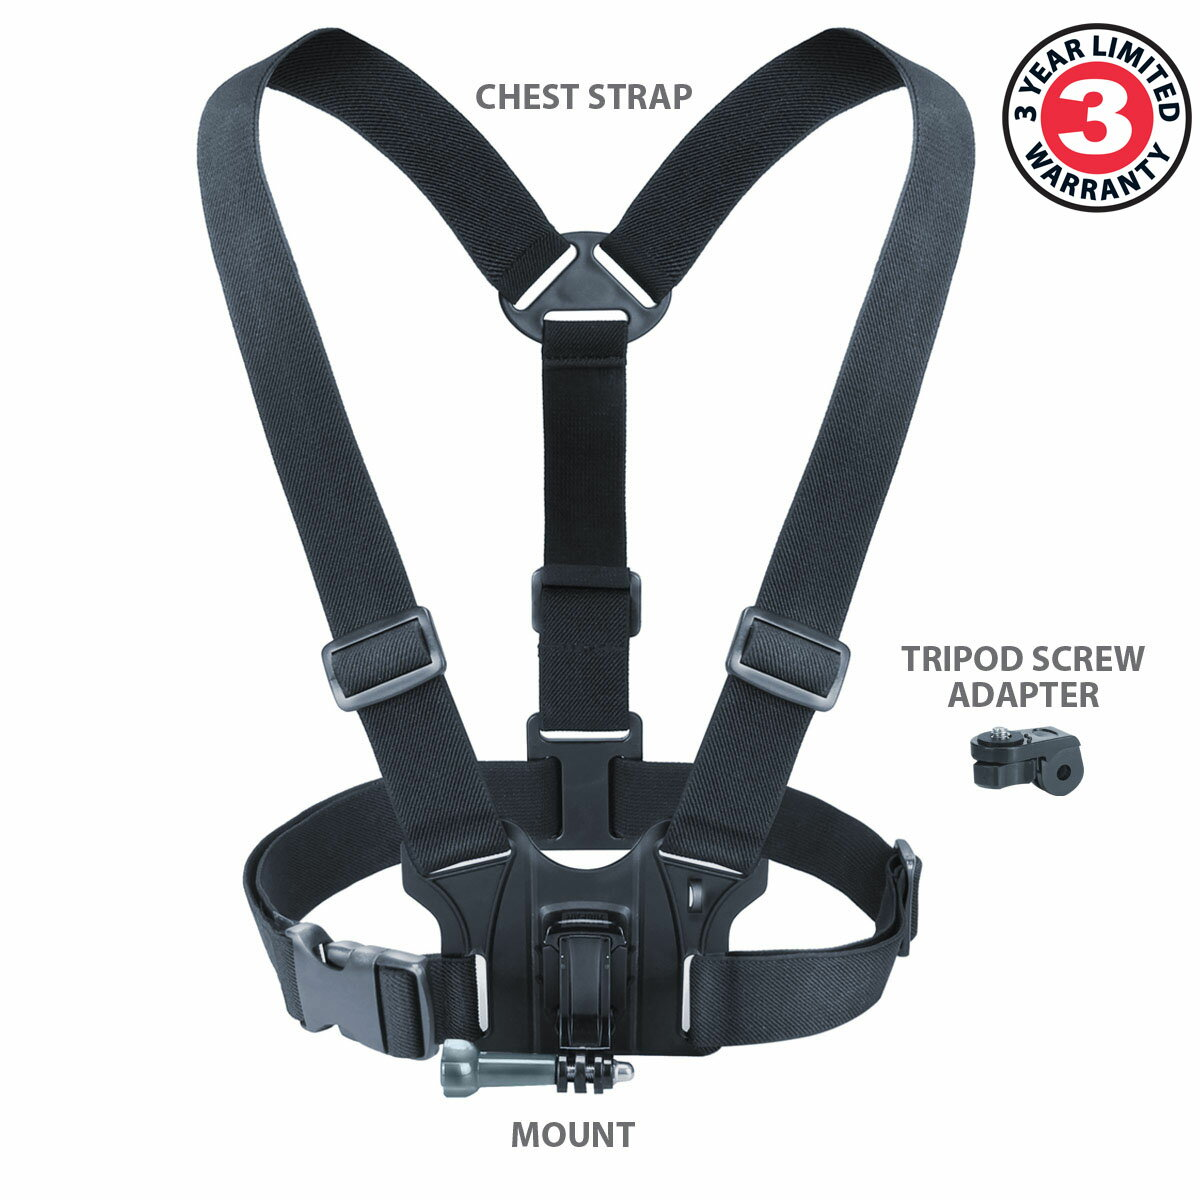 Tough Camera Chest Strap Mount with J Hook and Tripod Adapter by USA Gear - Works With Canon PowerShot D30 , Nikon Coolpix AW130 , Olympus TG-4 & More 1